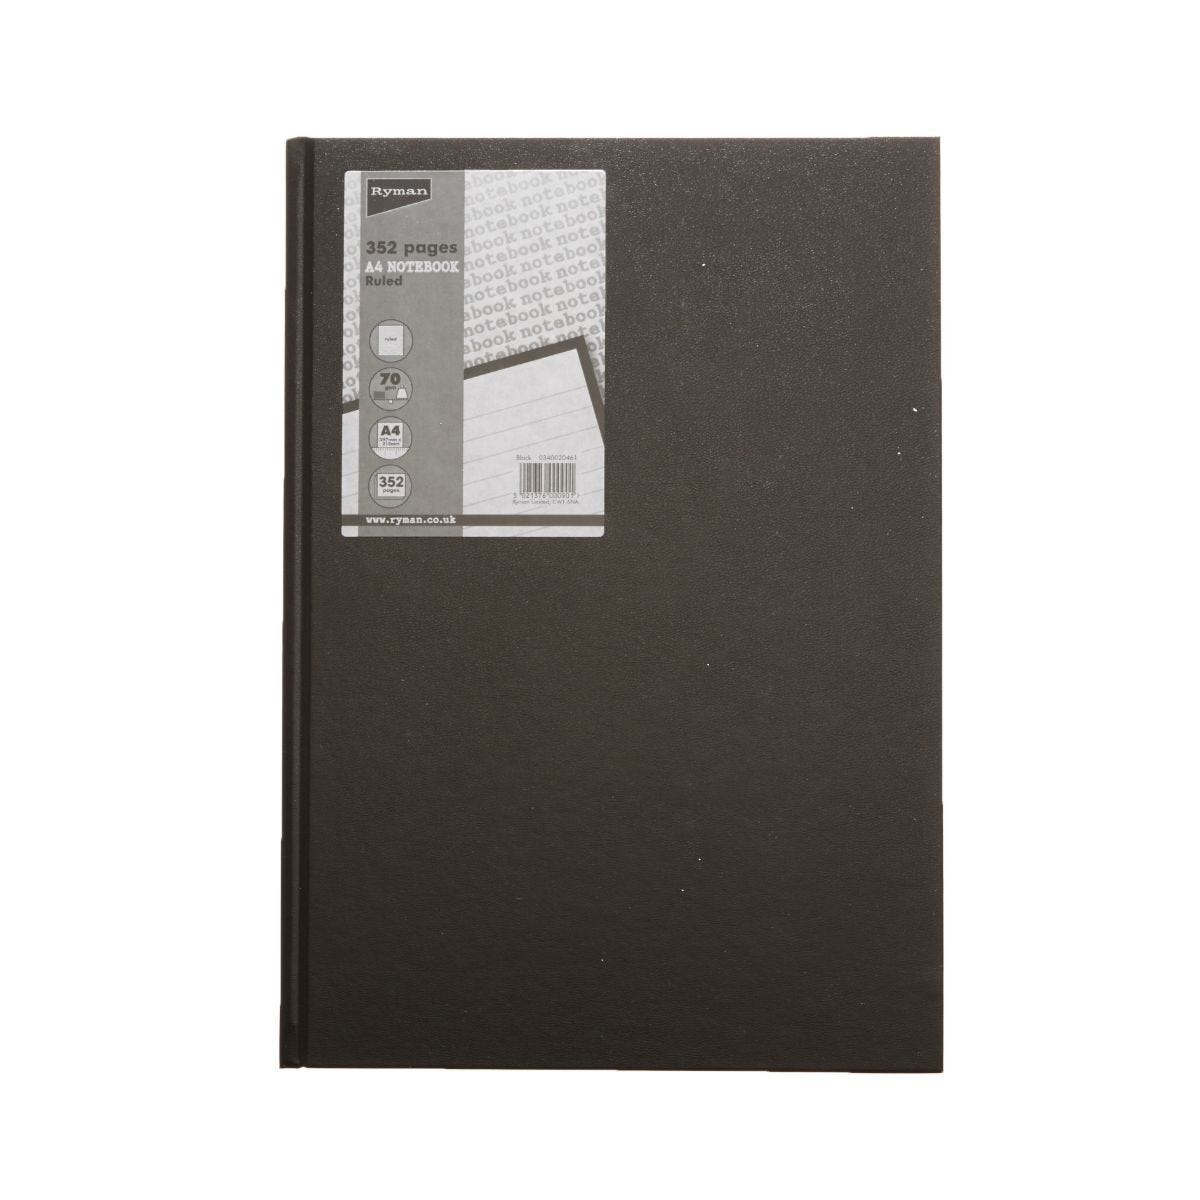 Ryman Notebook A4 Bumper Ruled Bound 352 Pages 192 Sheets